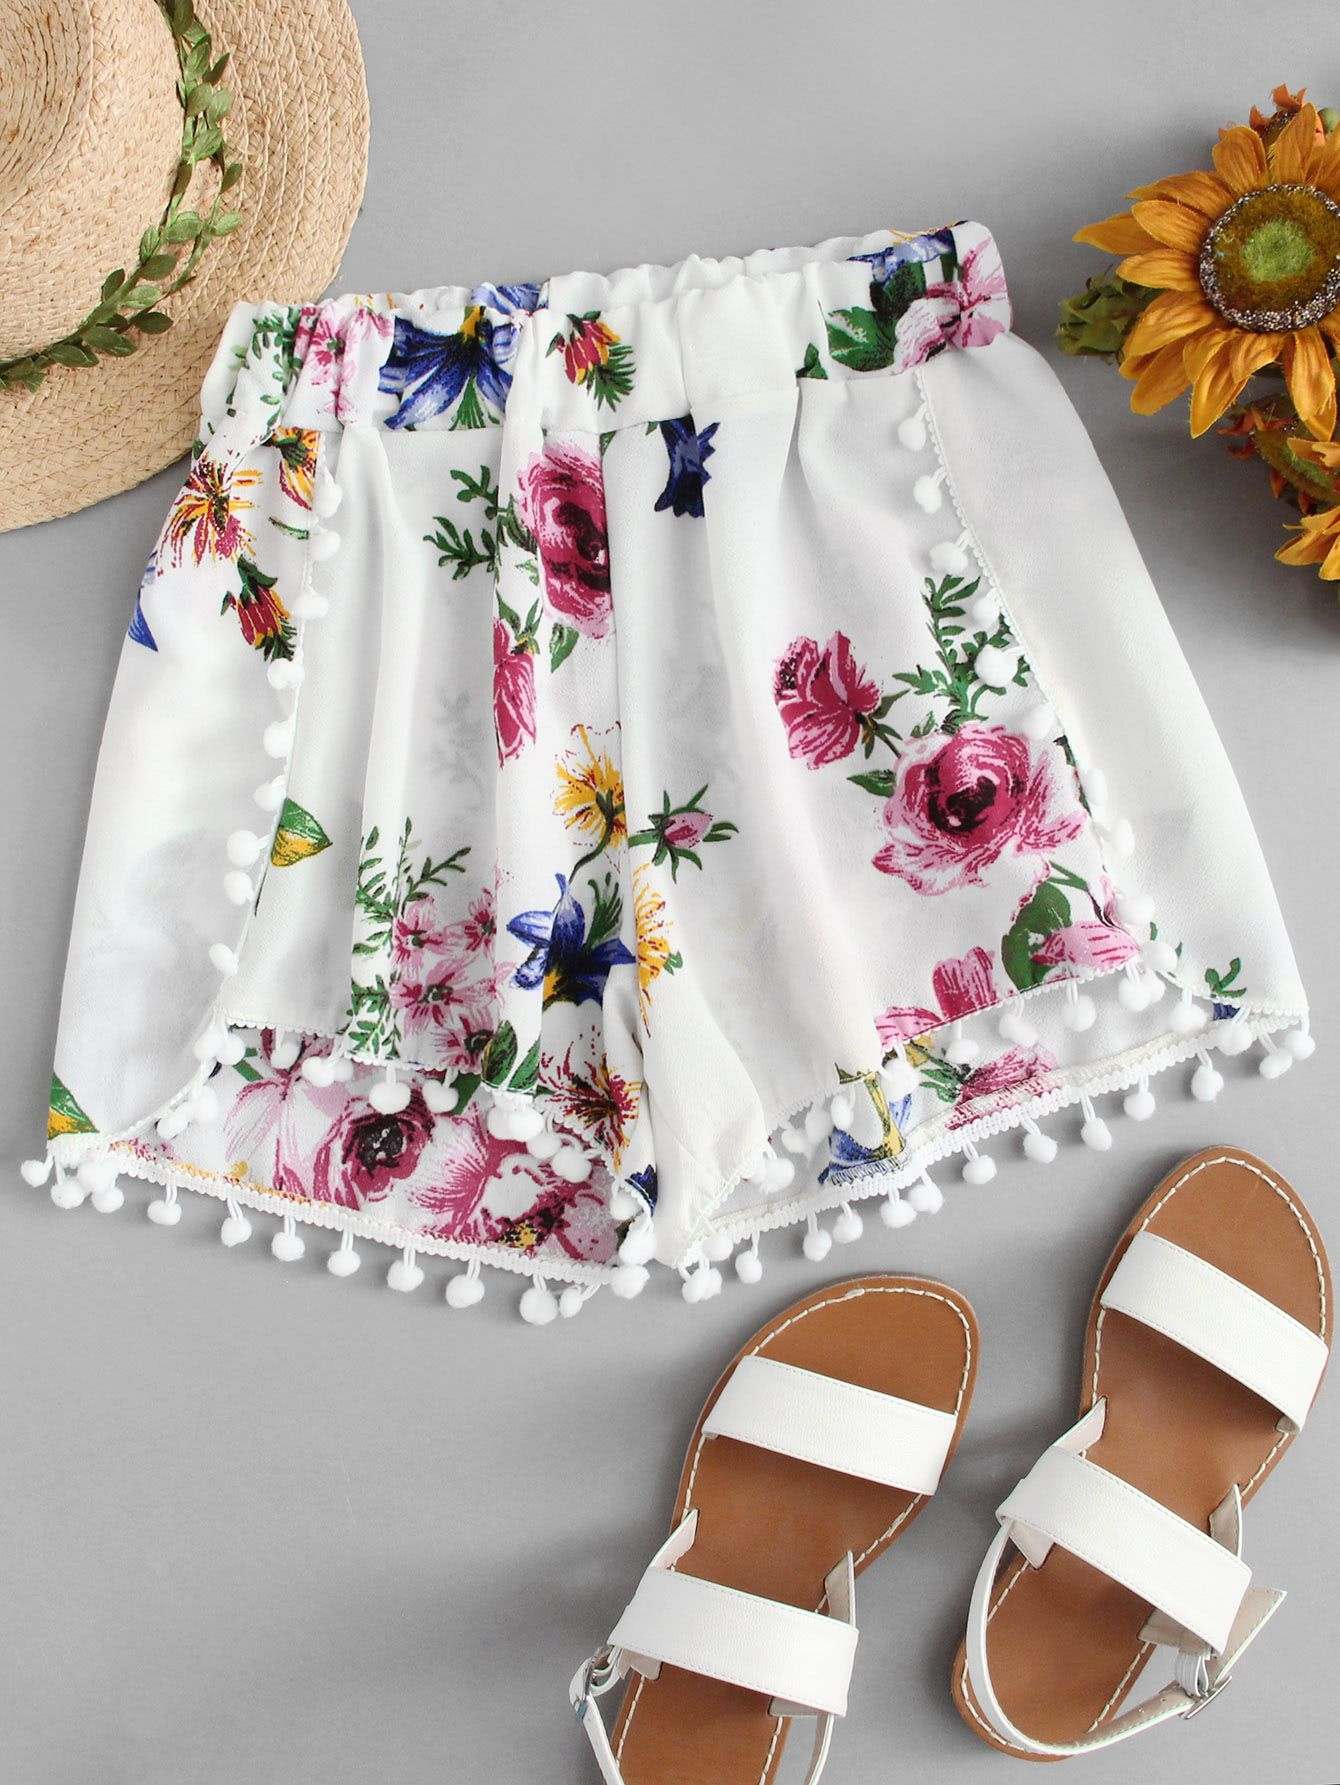 Top Trends In Summer Shorts for 2018 - Our Picks Under  20  c7378c82366